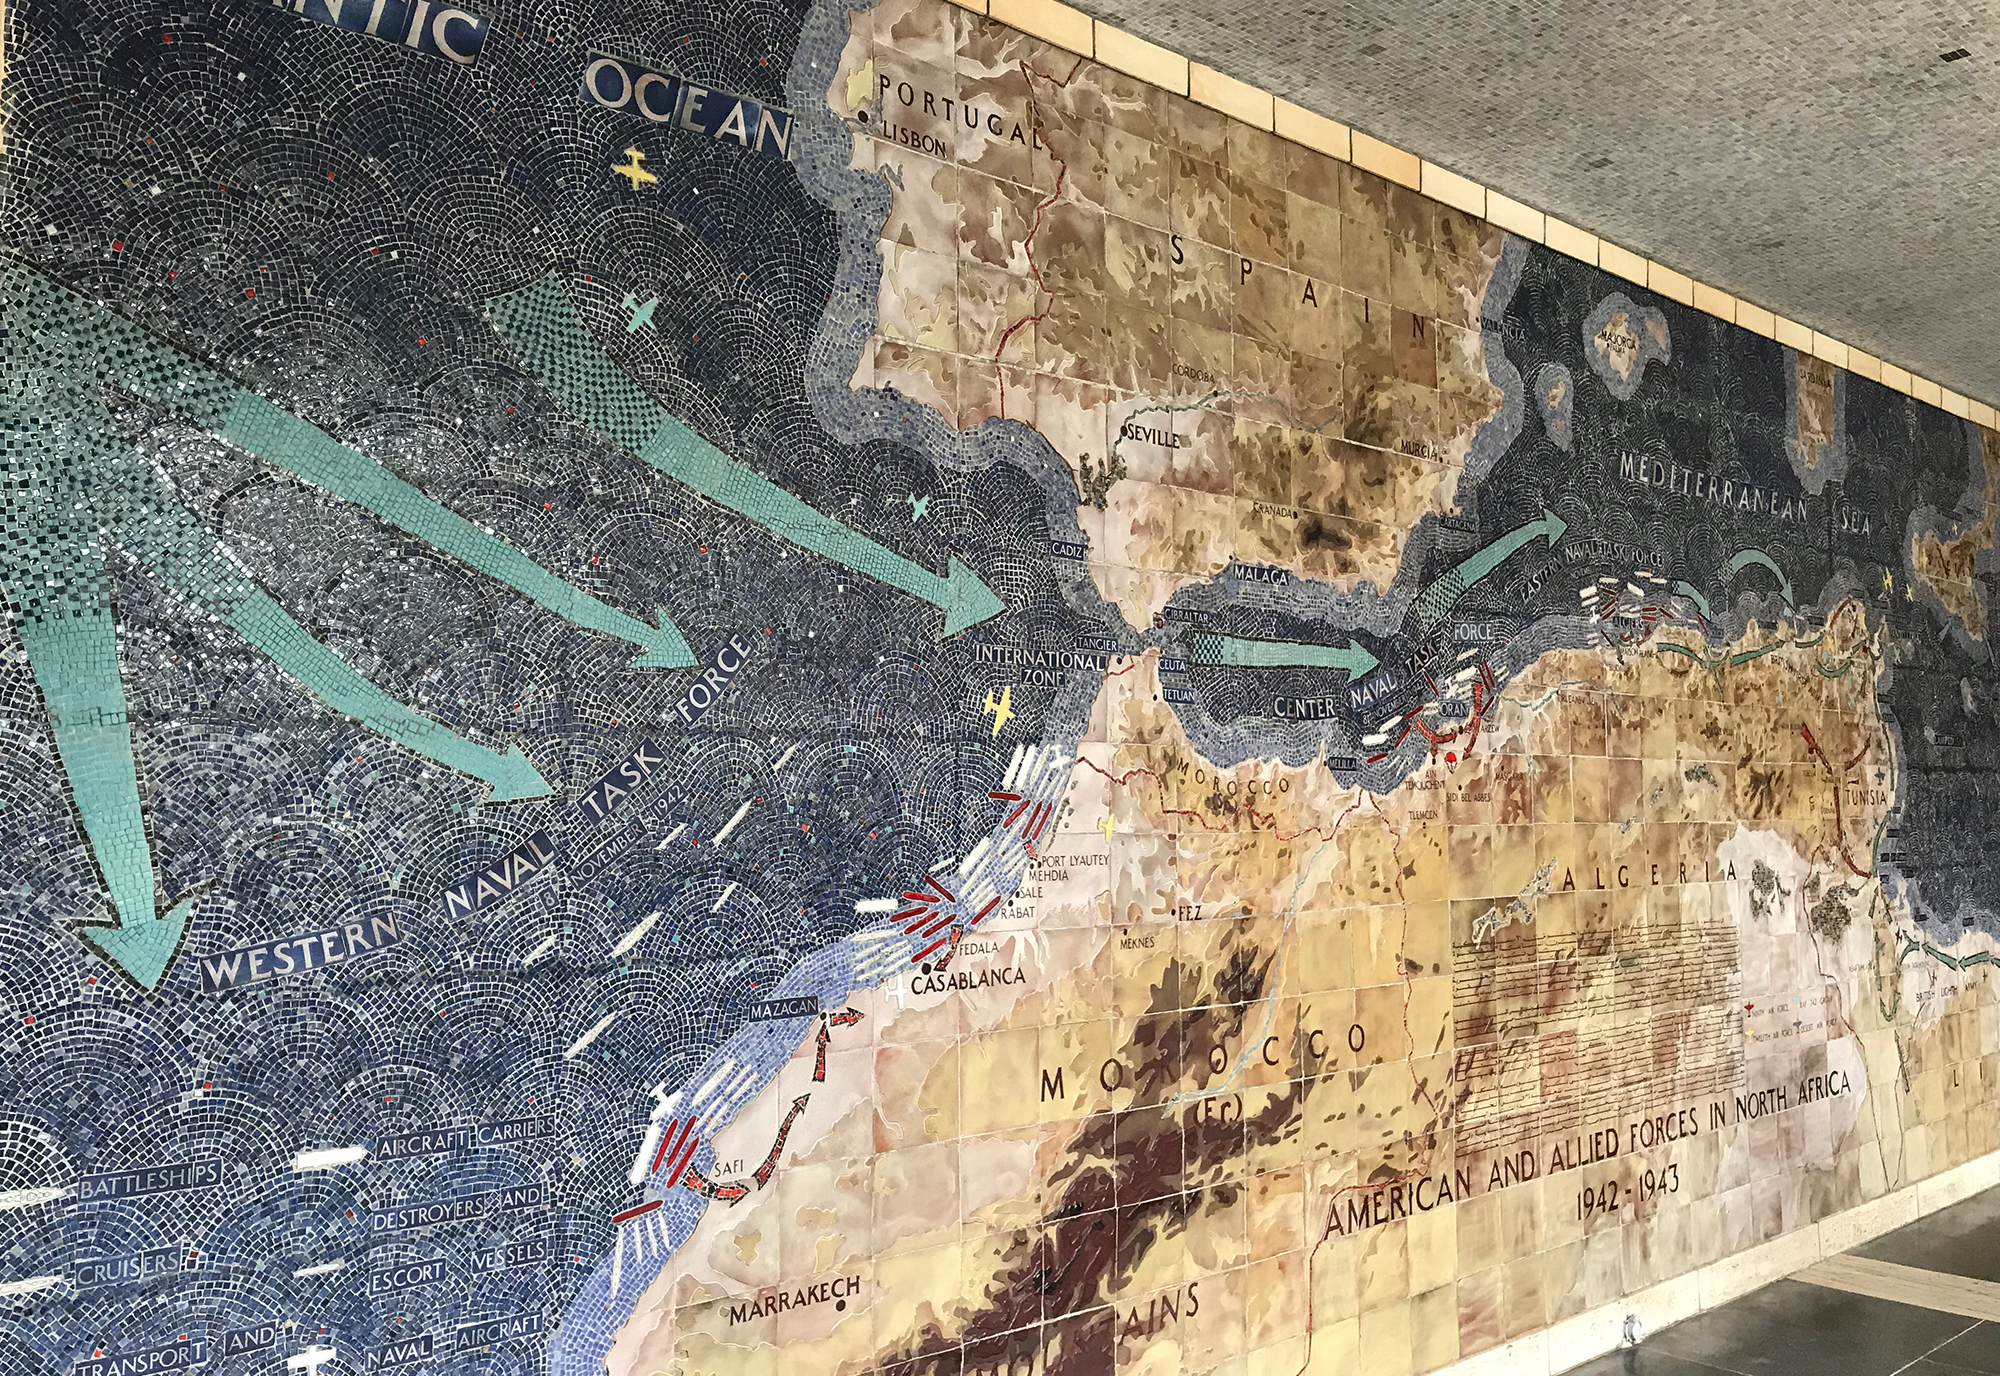 Open-Air Map Room with Mosaic Depiction of North African Campaign